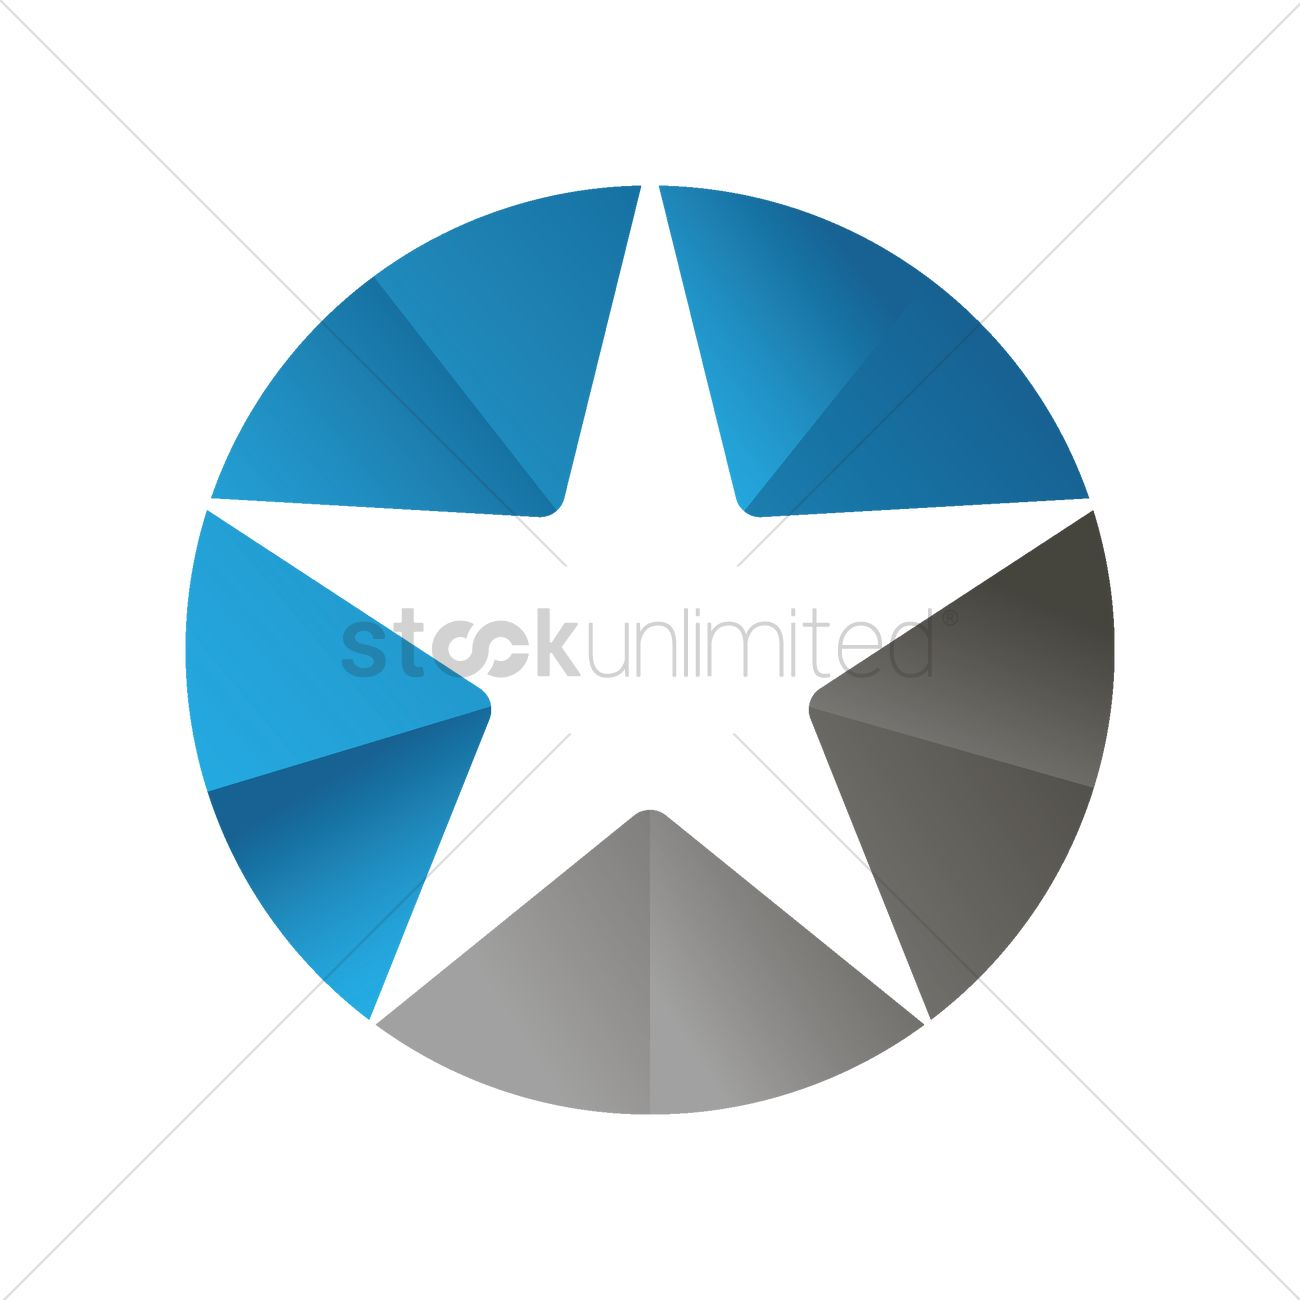 Star Inside A Circle Vector Image 1506198 Stockunlimited